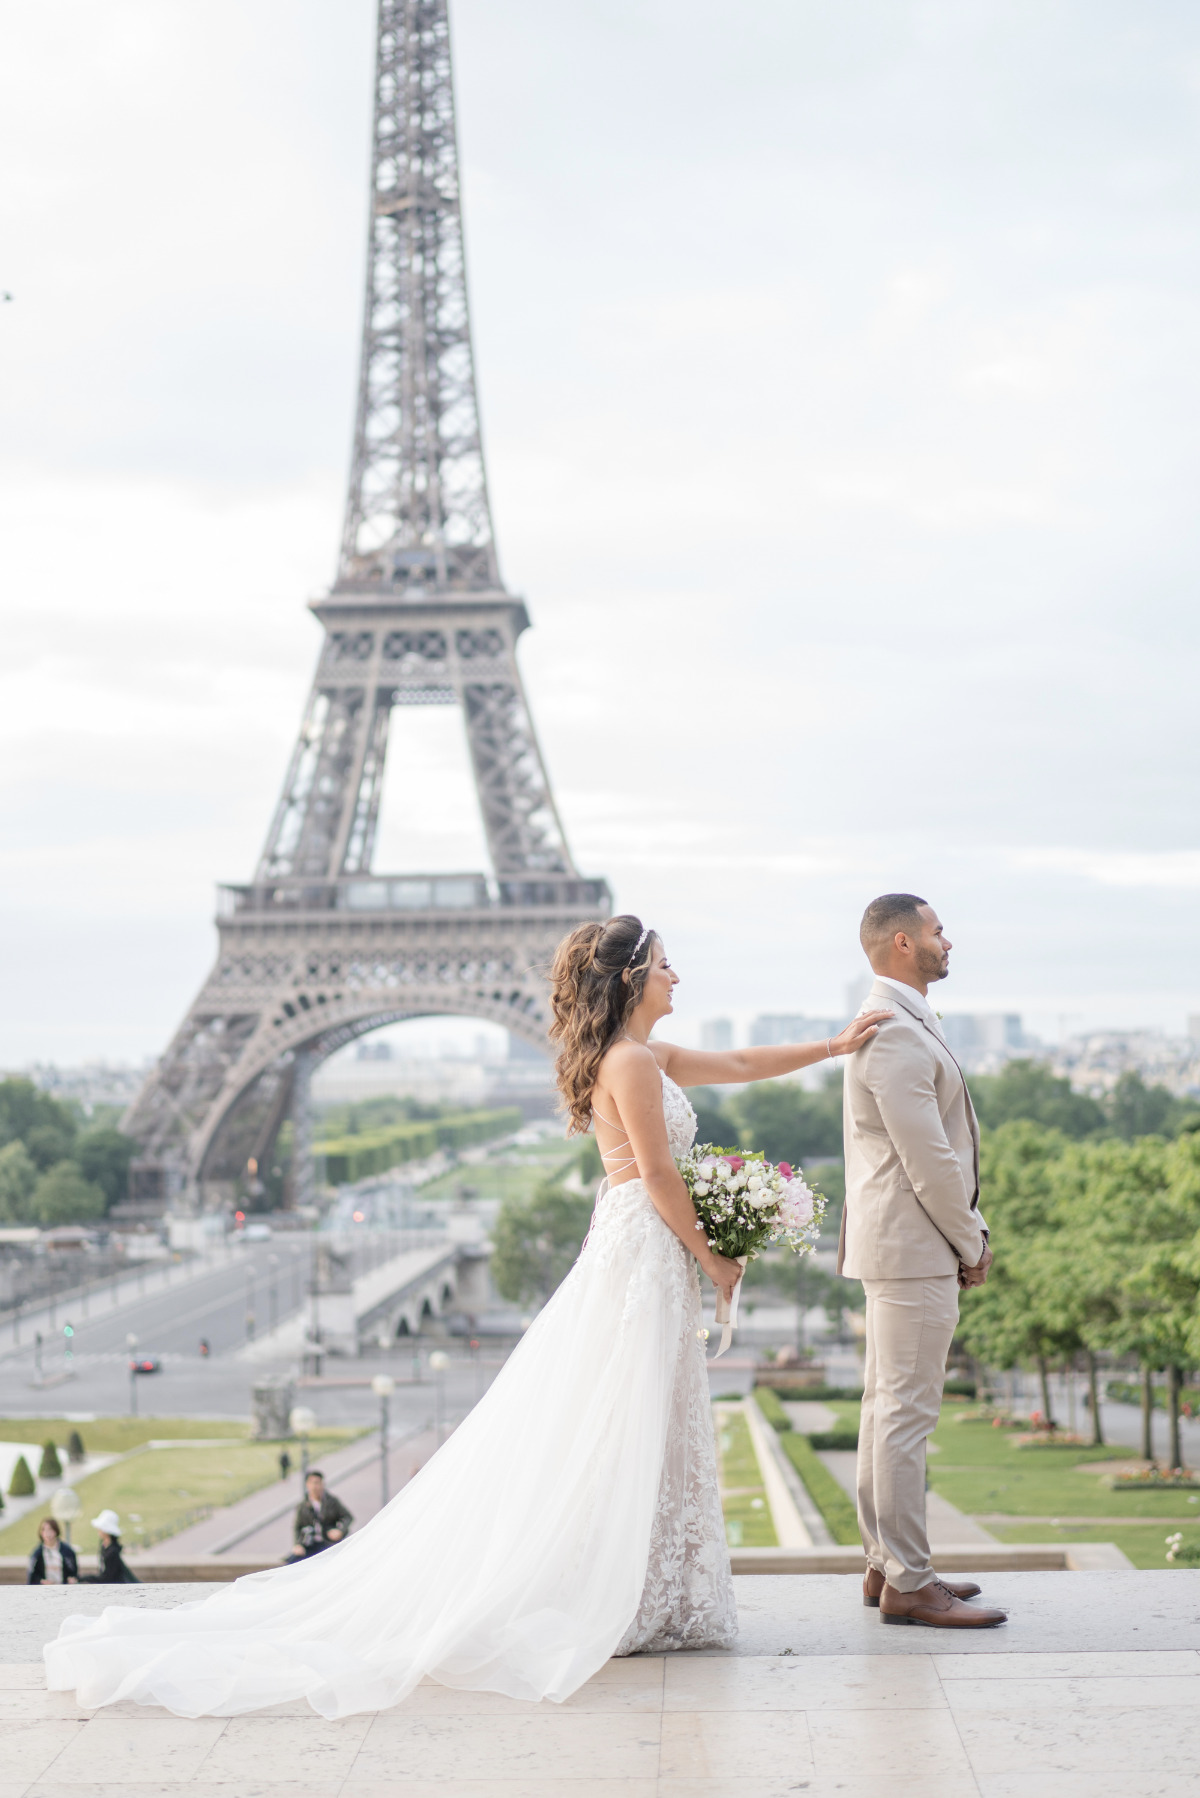 first look in front of the Eiffel Tower